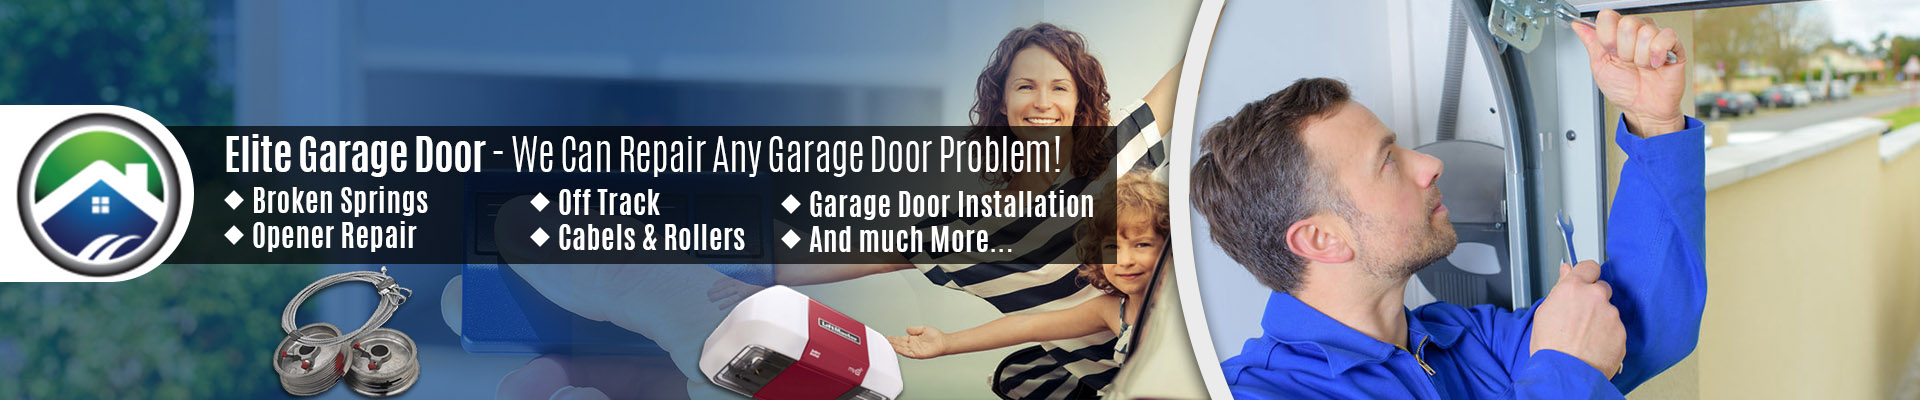 Garage Door Roller Came Out Of Track Repair By The Elite Tech Services, LLC Experts